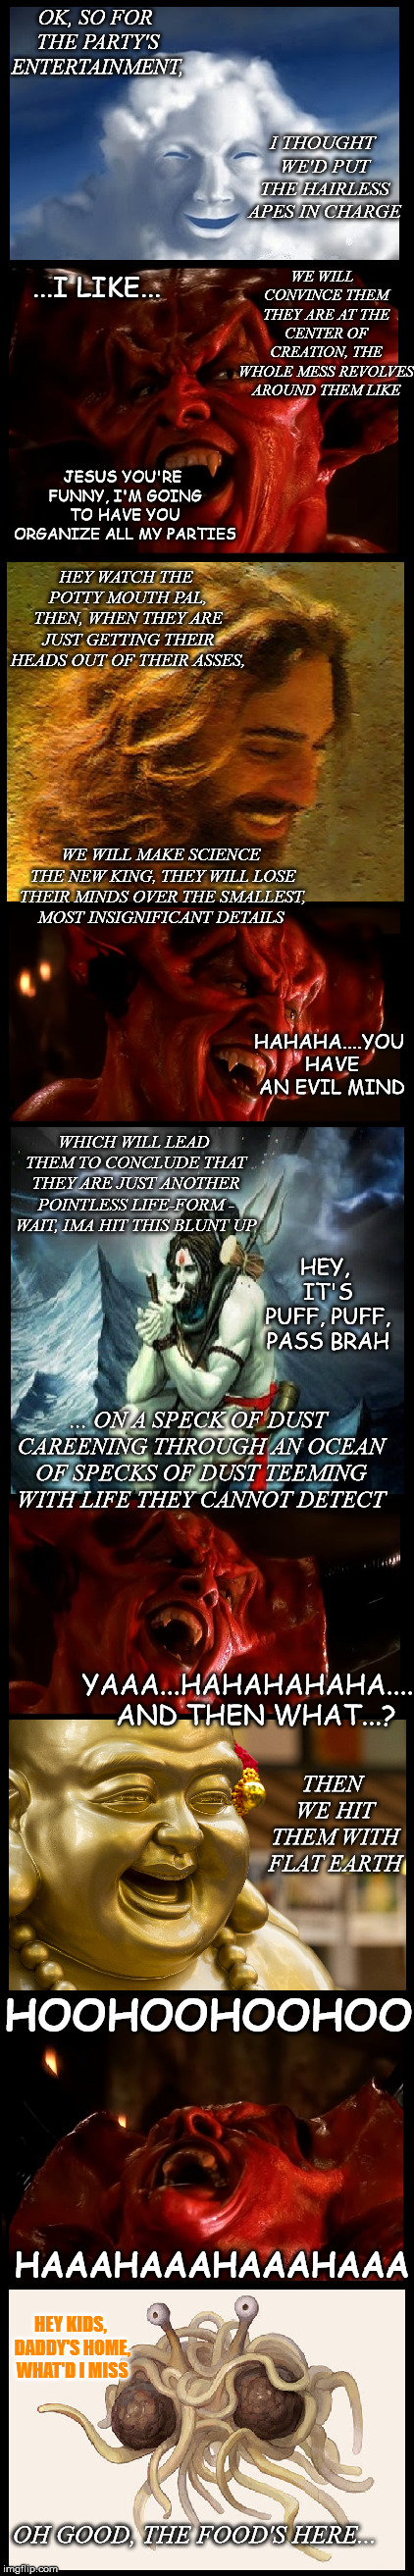 god and the devil plan a party | OK, SO FOR THE PARTY'S ENTERTAINMENT, I THOUGHT WE'D PUT THE HAIRLESS APES IN CHARGE ...I LIKE... WE WILL  CONVINCE THEM THEY ARE AT THE CEN | image tagged in god,devil,jesus,shiva,buddha,flying spaghetti monster | made w/ Imgflip meme maker